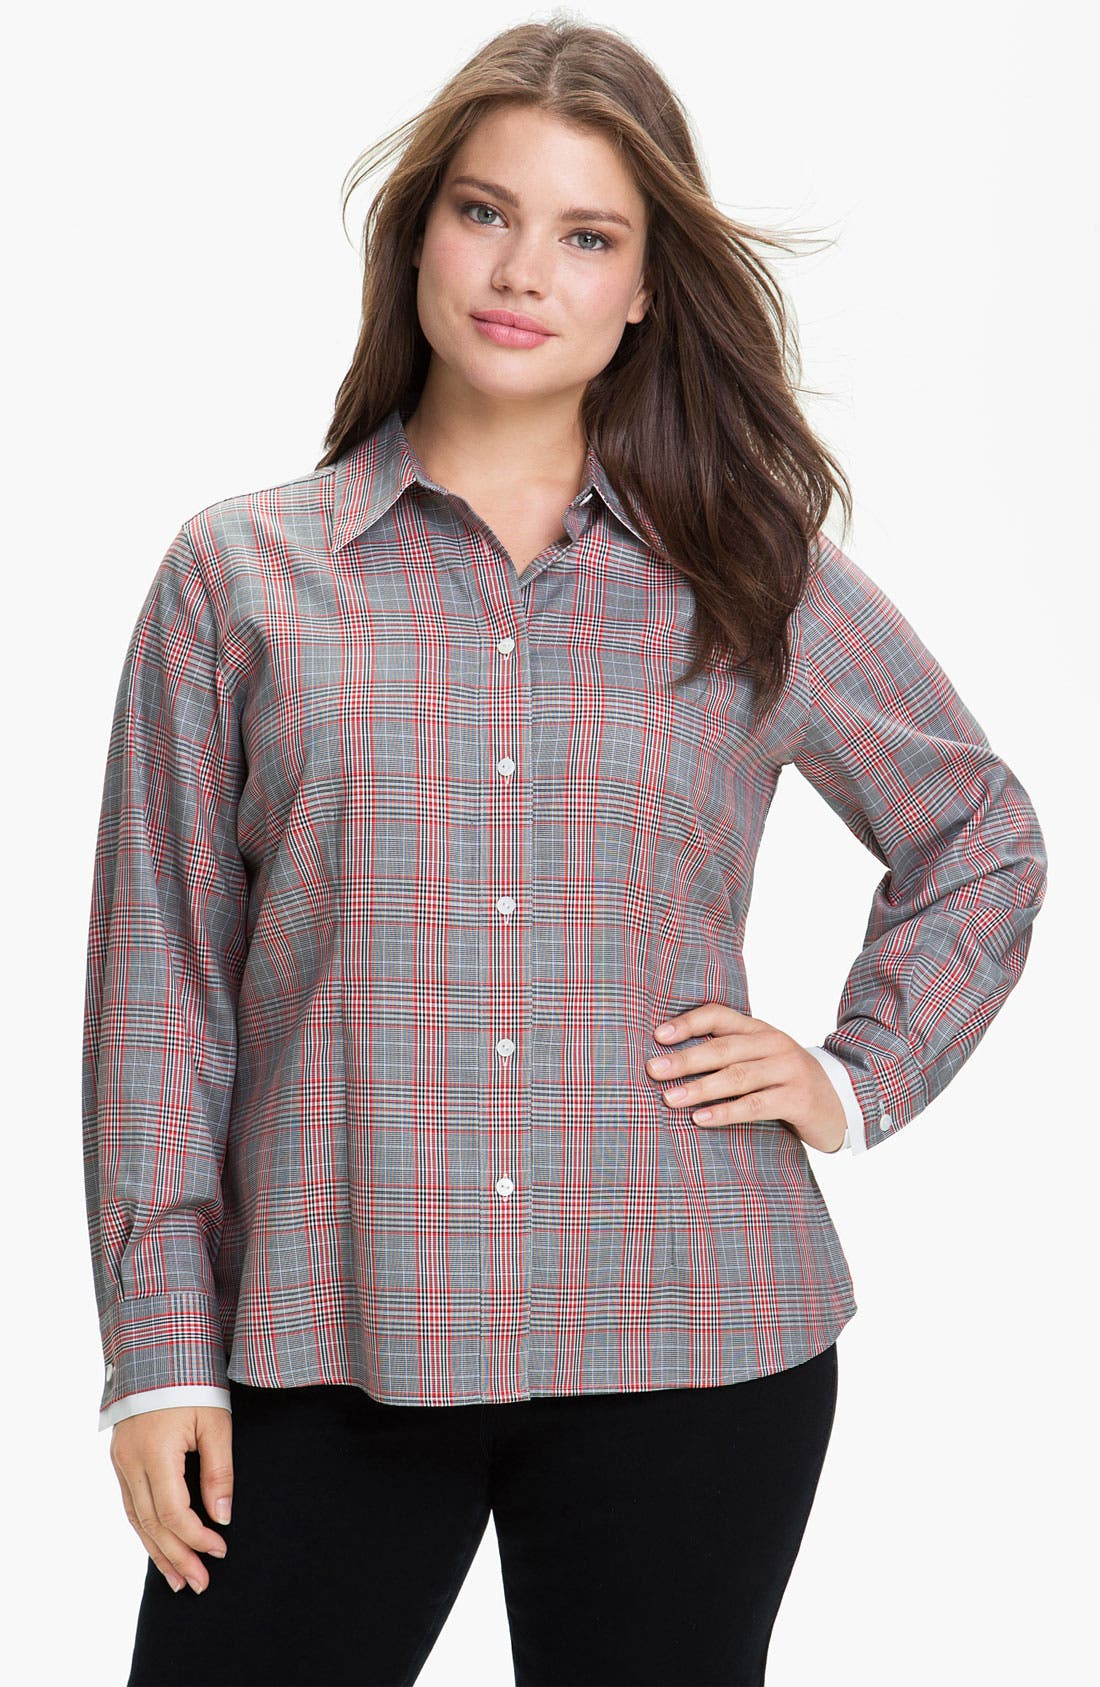 Main Image - Foxcroft Glen Plaid Wrinkle Free Shaped Shirt (Plus)